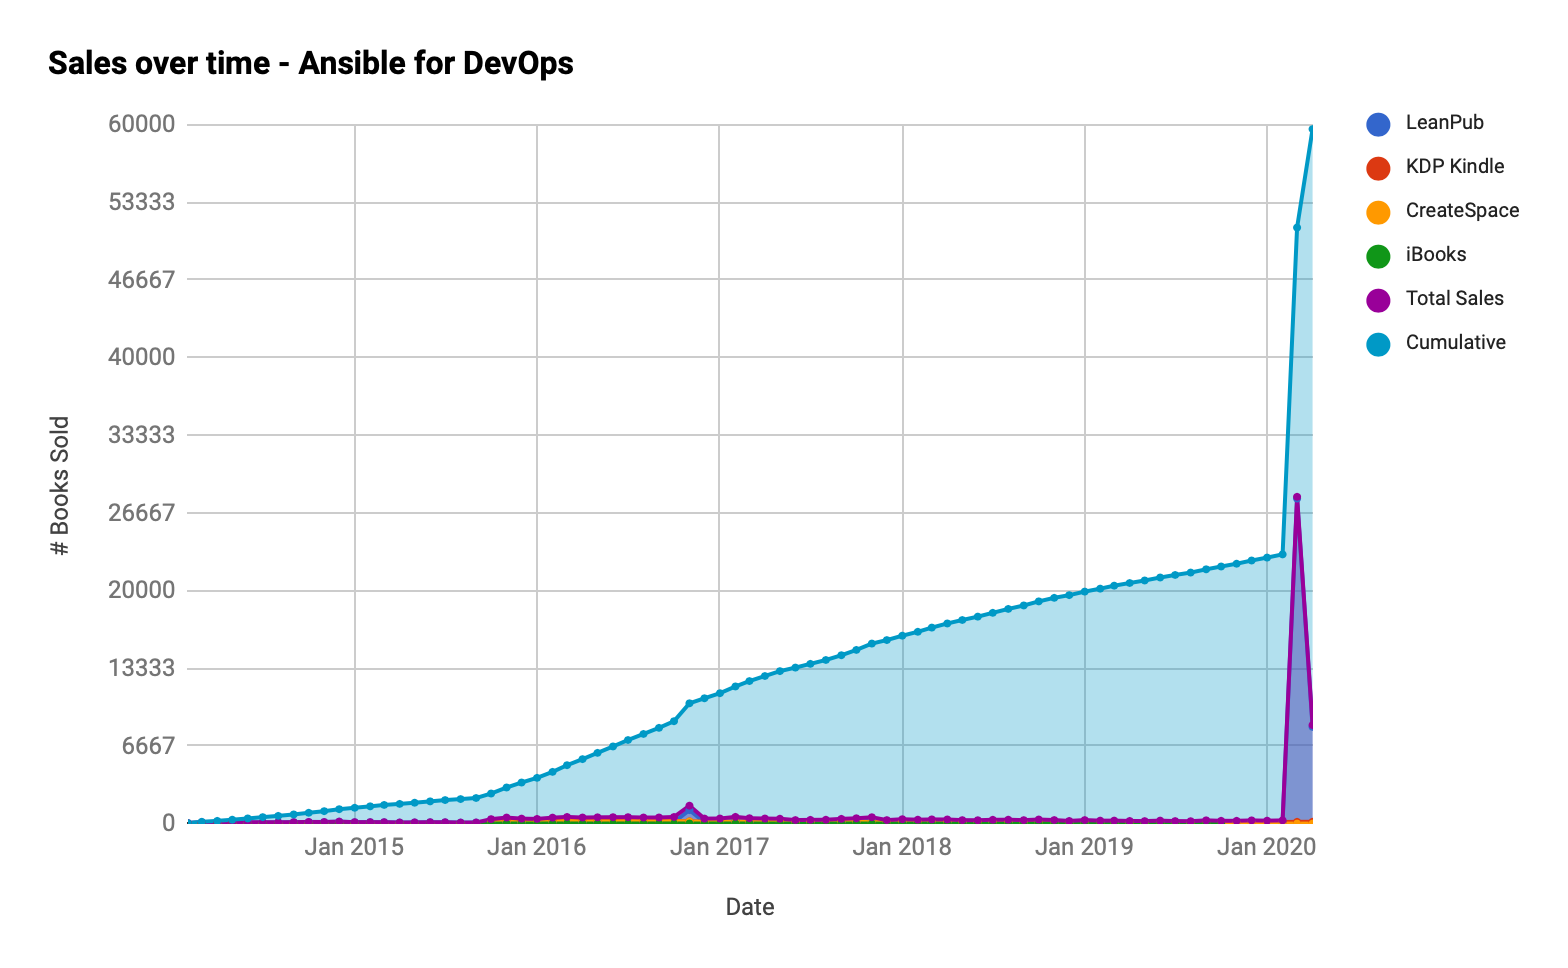 Ansible for DevOps - Cumulative Sales over Time